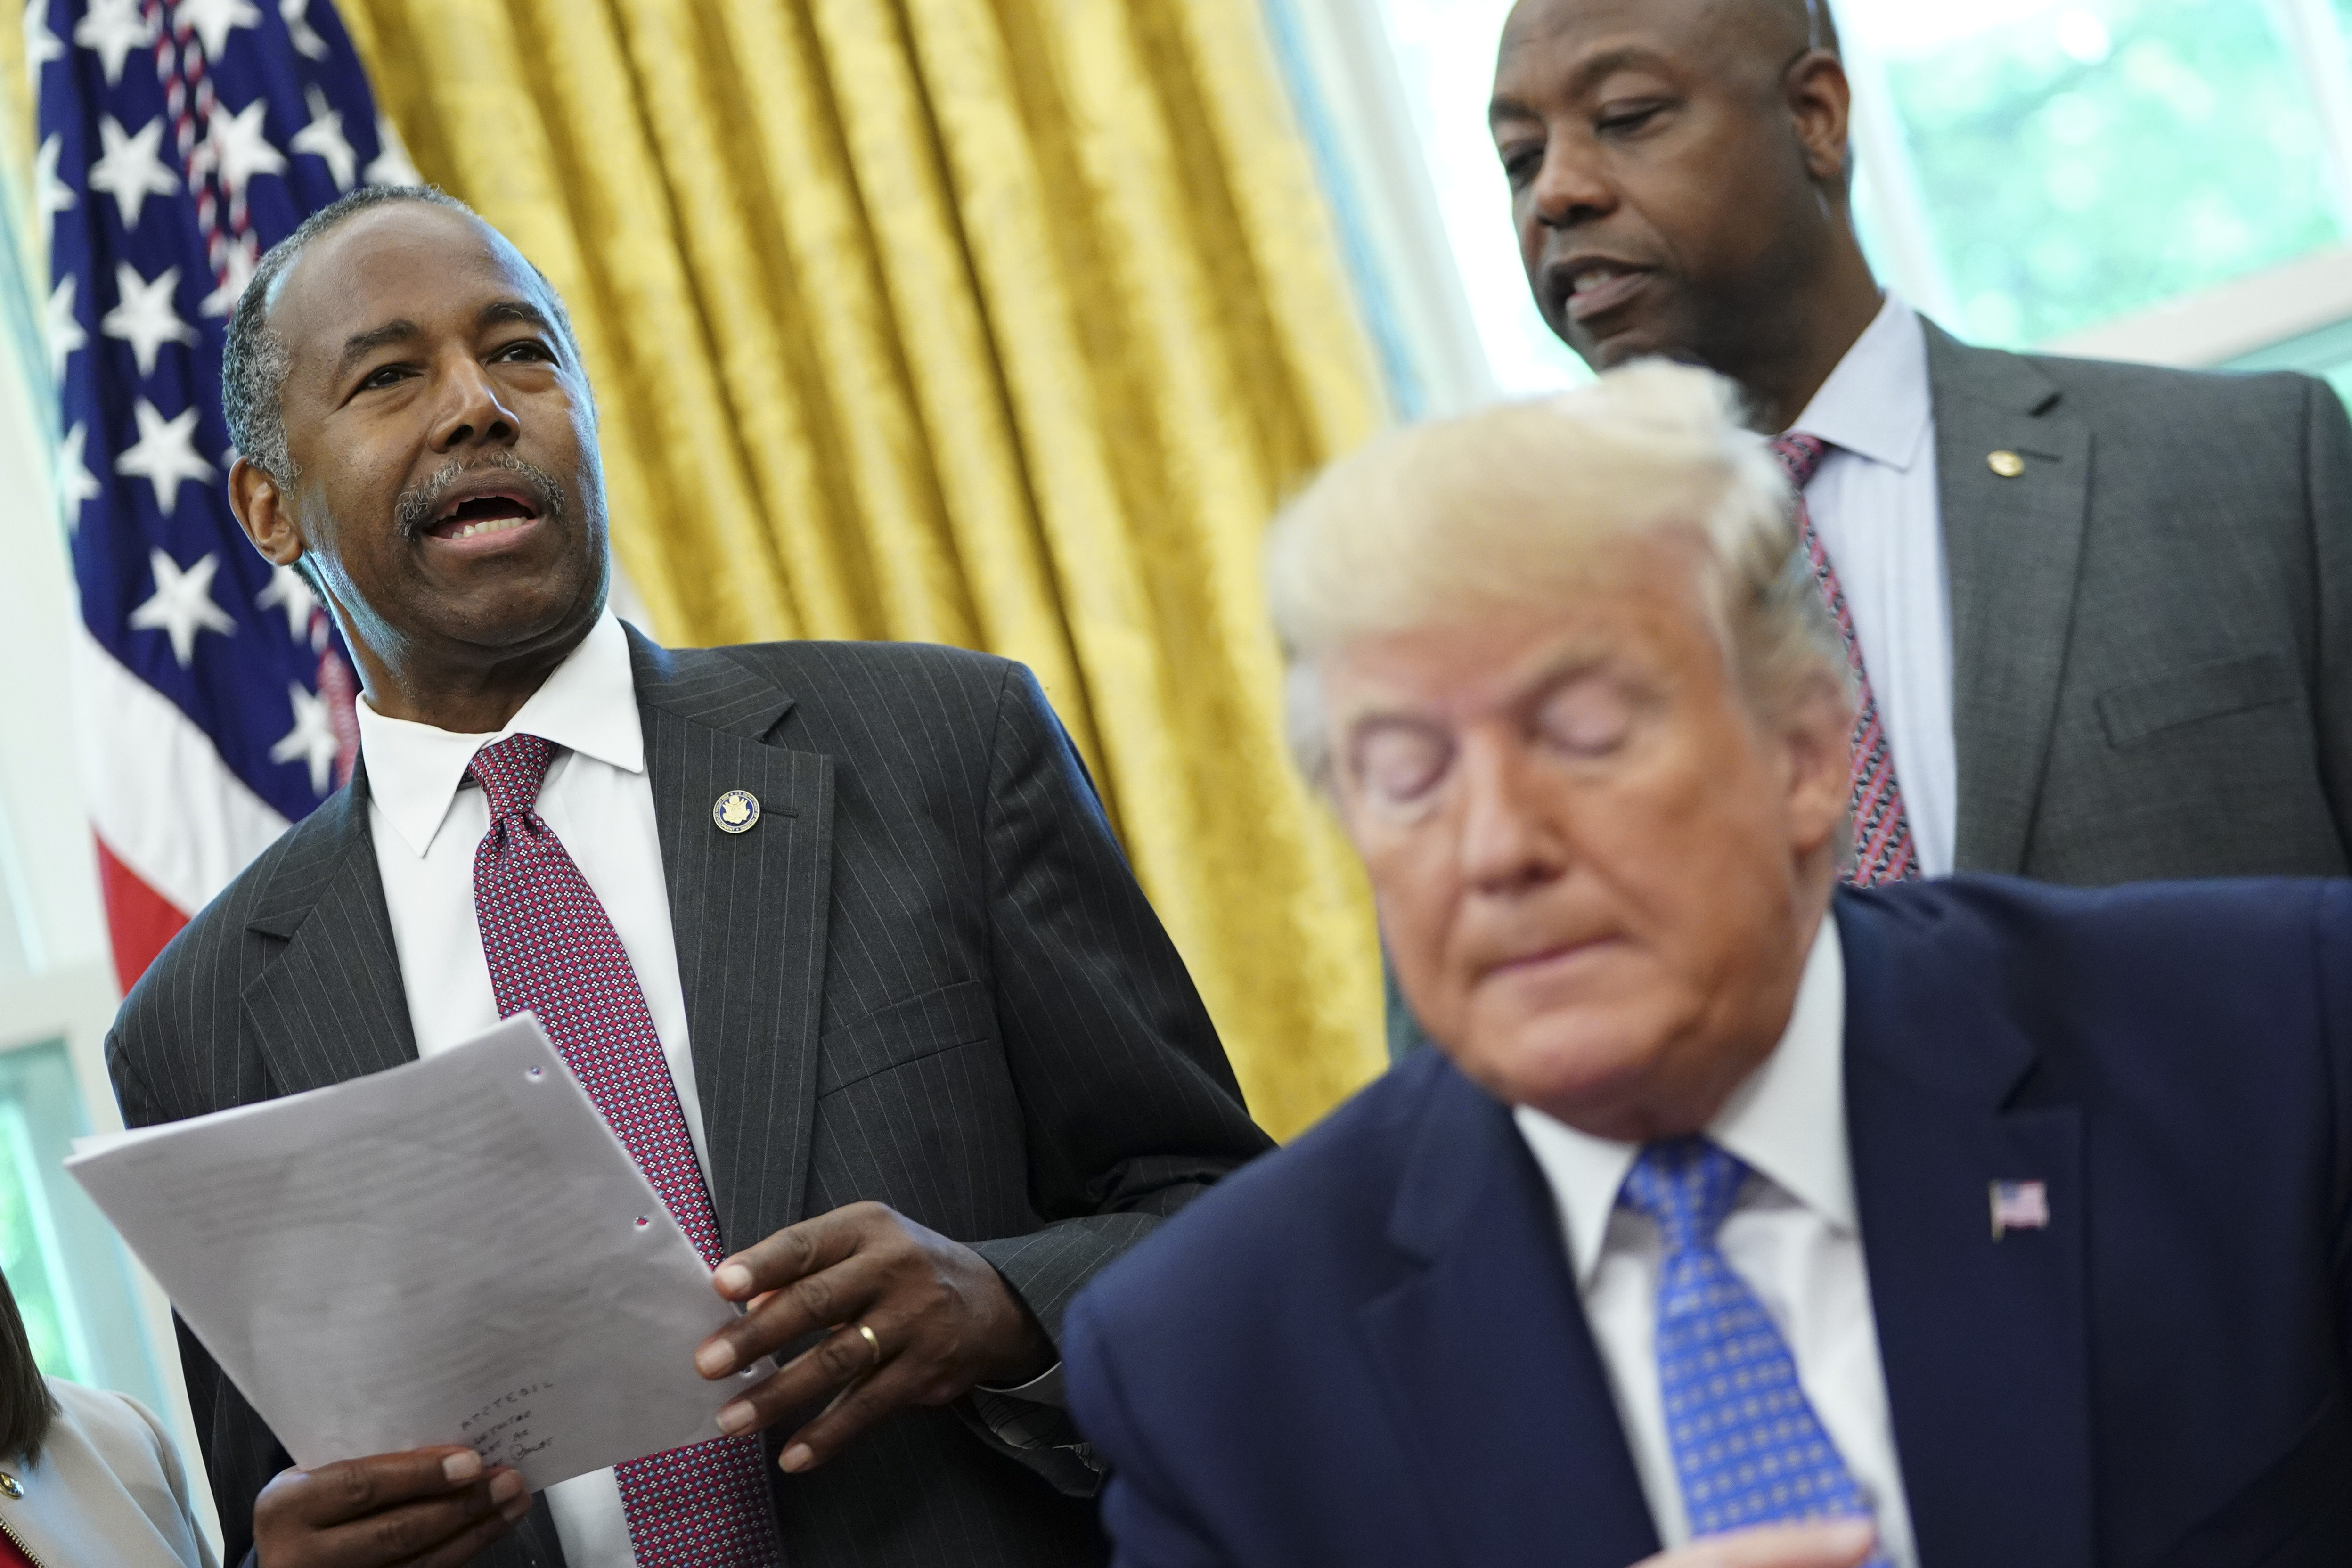 Ben Carson, US Secretary of Housing and Urban Development, speaks as US President Donald Trump signs an executive order to establish a White House council on affordable housing in the Oval Office of the White House in Washington, DC on June 25, 2019. (Photo by MANDEL NGAN / AFP) (Photo credit should read MANDEL NGAN/AFP/Getty Images)